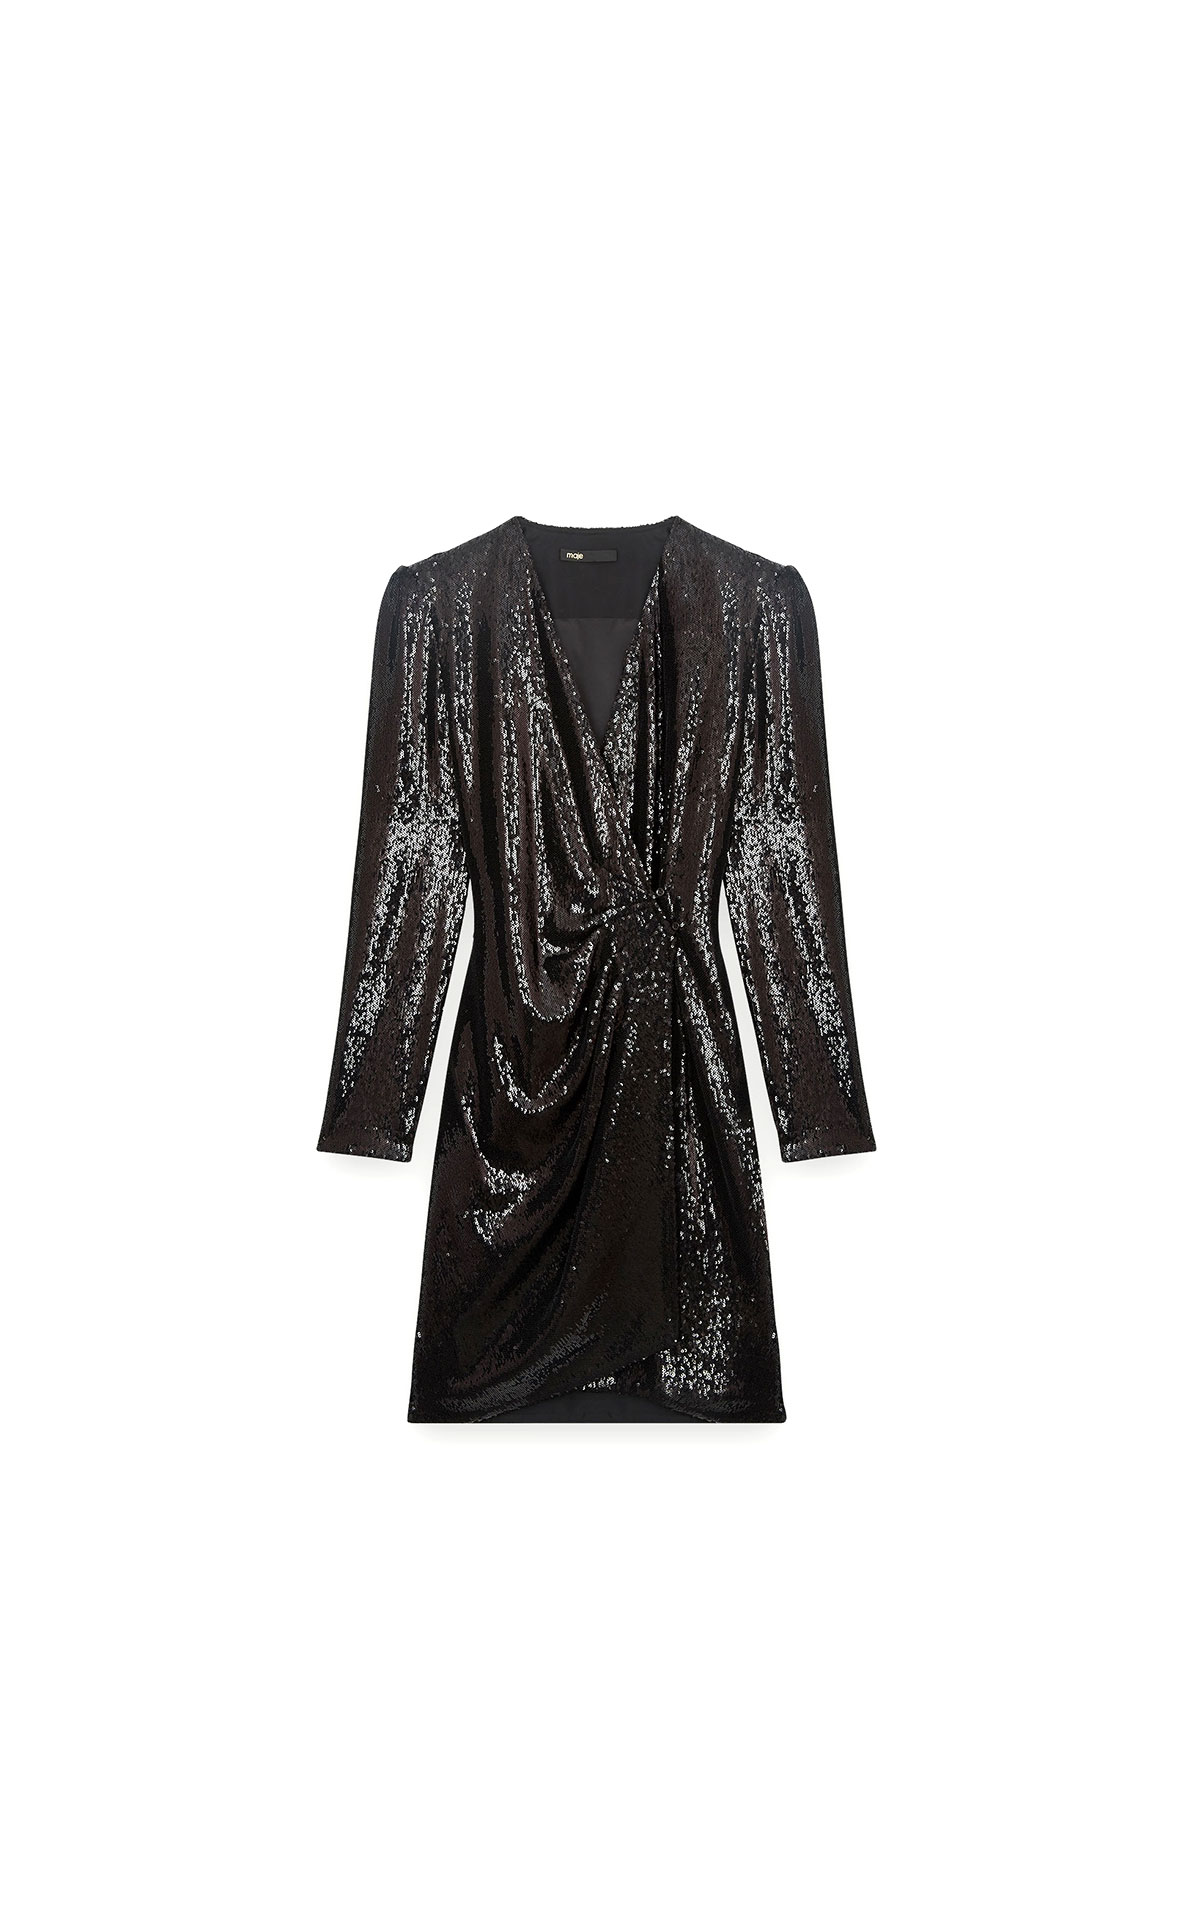 Maje Sequin evening dress in black at The Bicester Village Shopping Collection